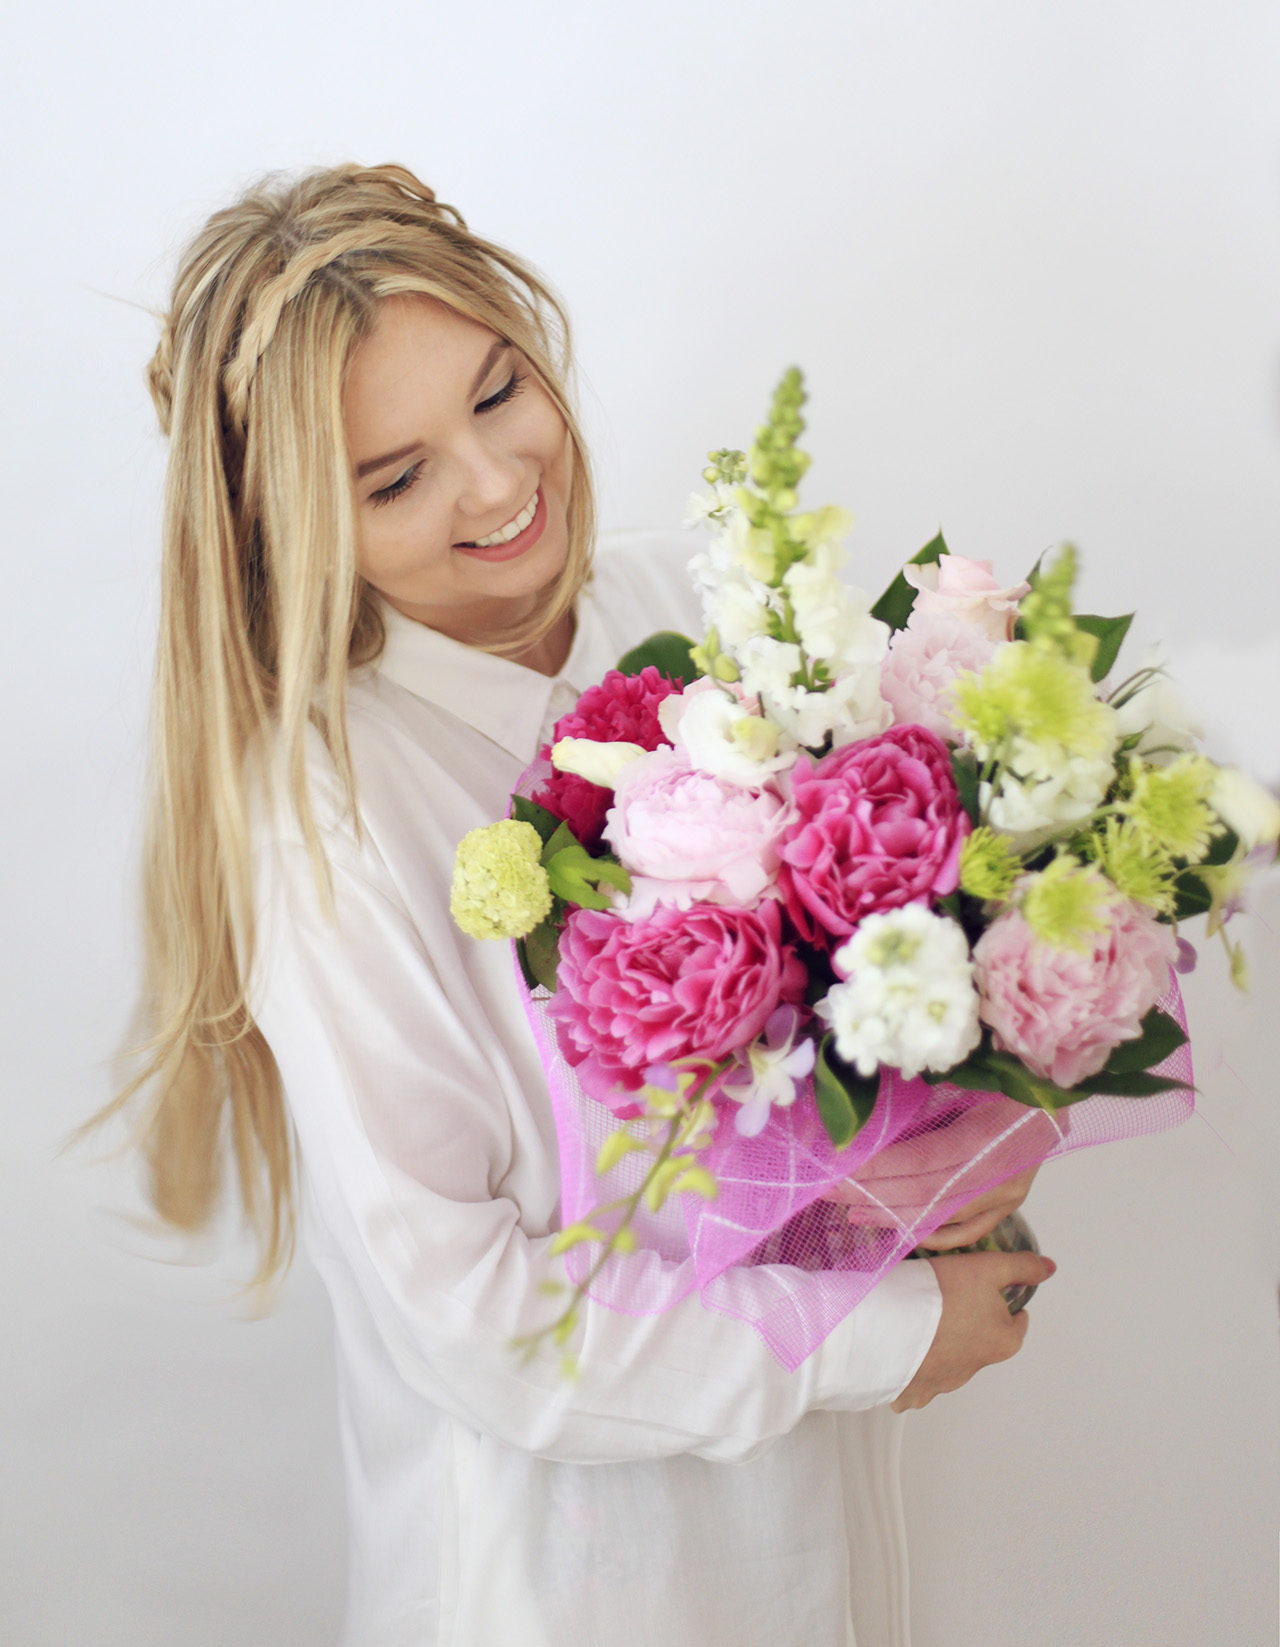 pretty-flowers-photoshoot-girl-happy-love